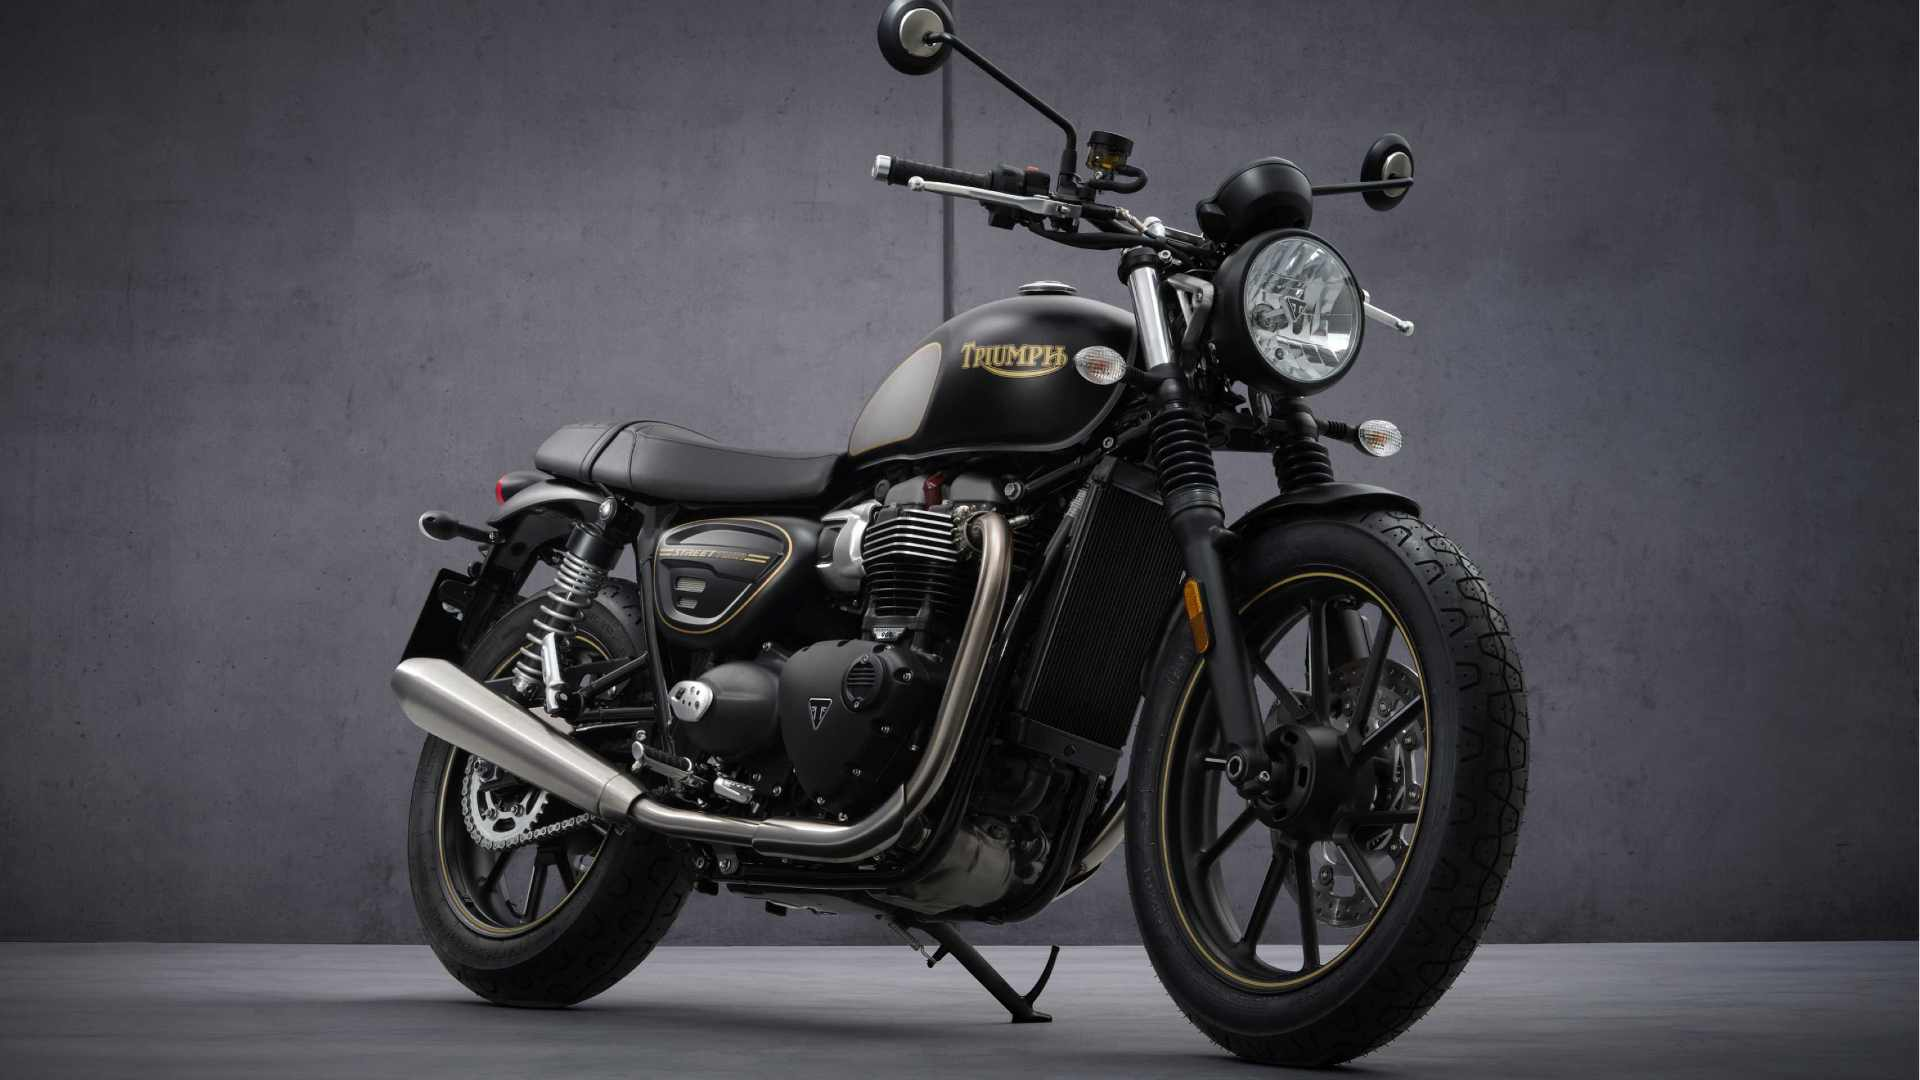 Just 1,000 examples of the Triumph Street Twin Gold Line edition will be built. Image: Triumph Motorcycles